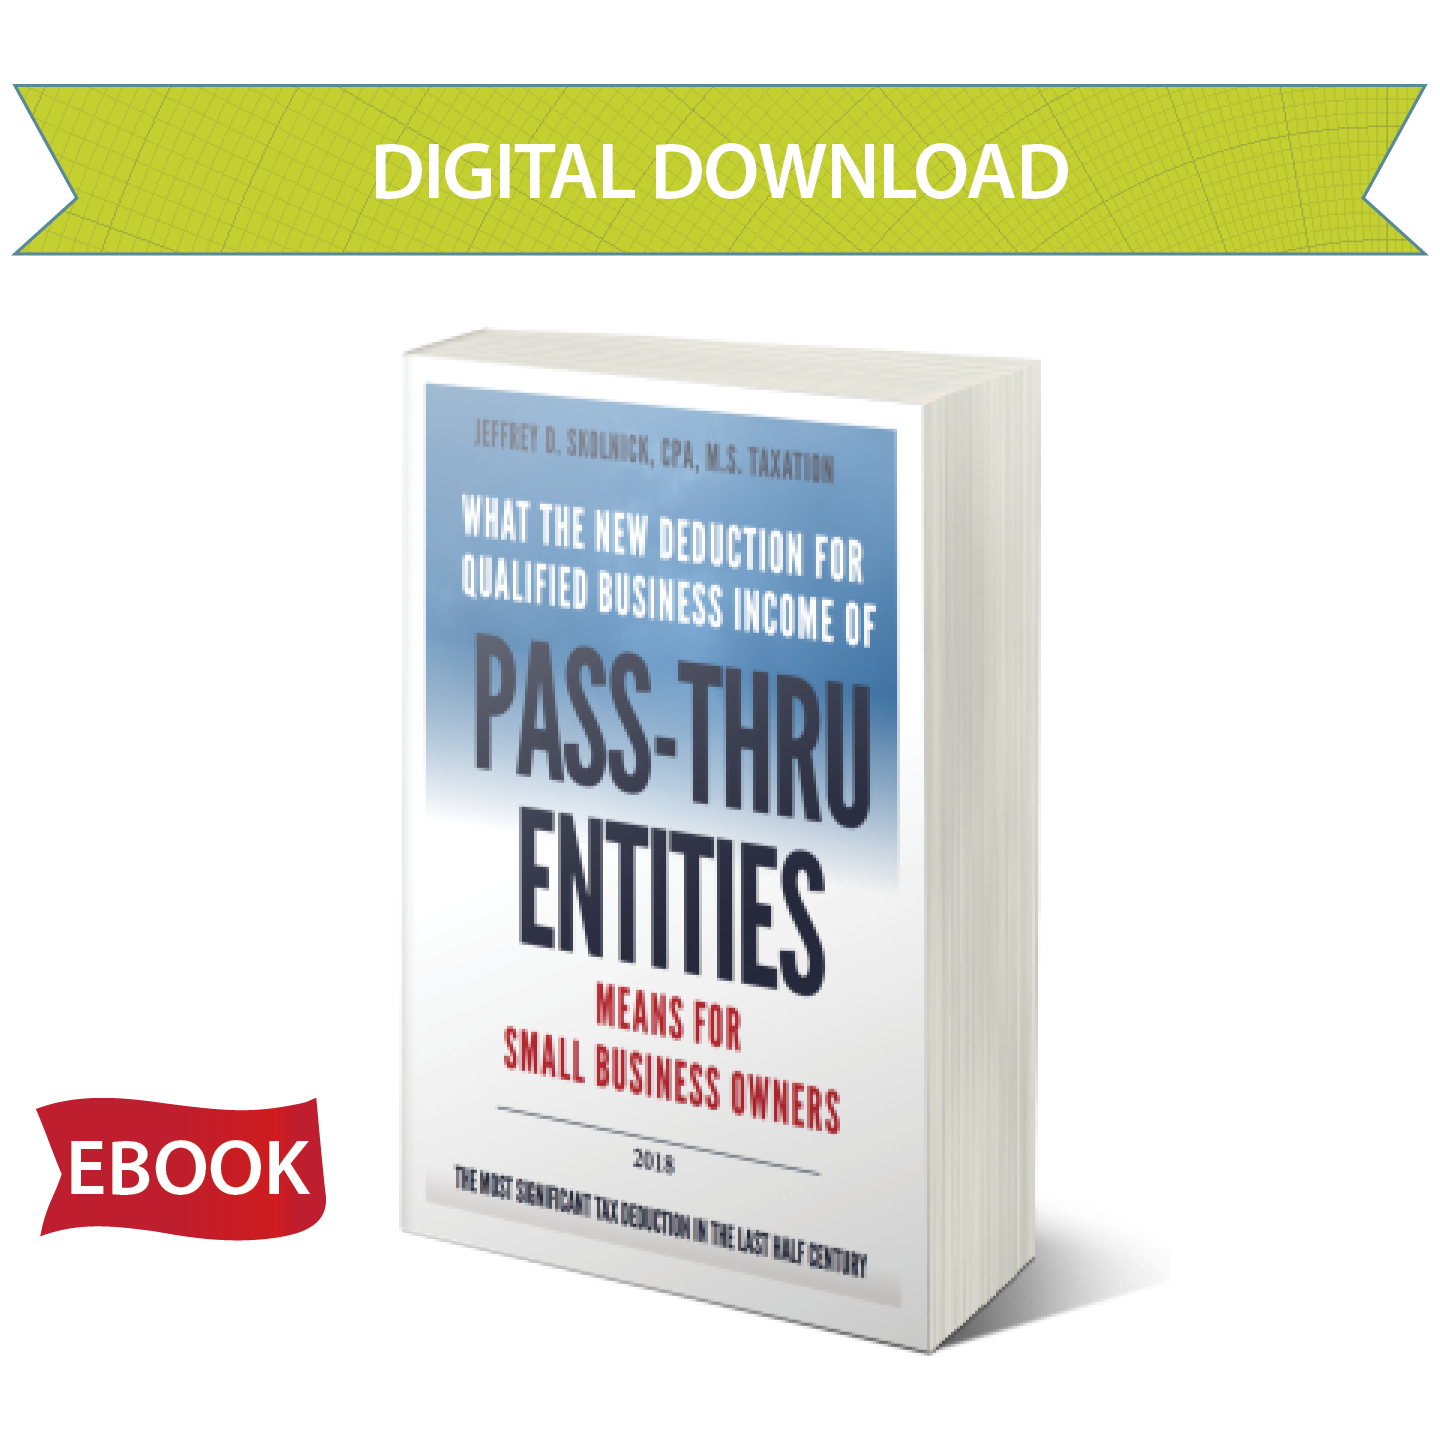 WHAT THE DEDUCTION FOR QUALIFIED BUSINESS INCOME OF PASS